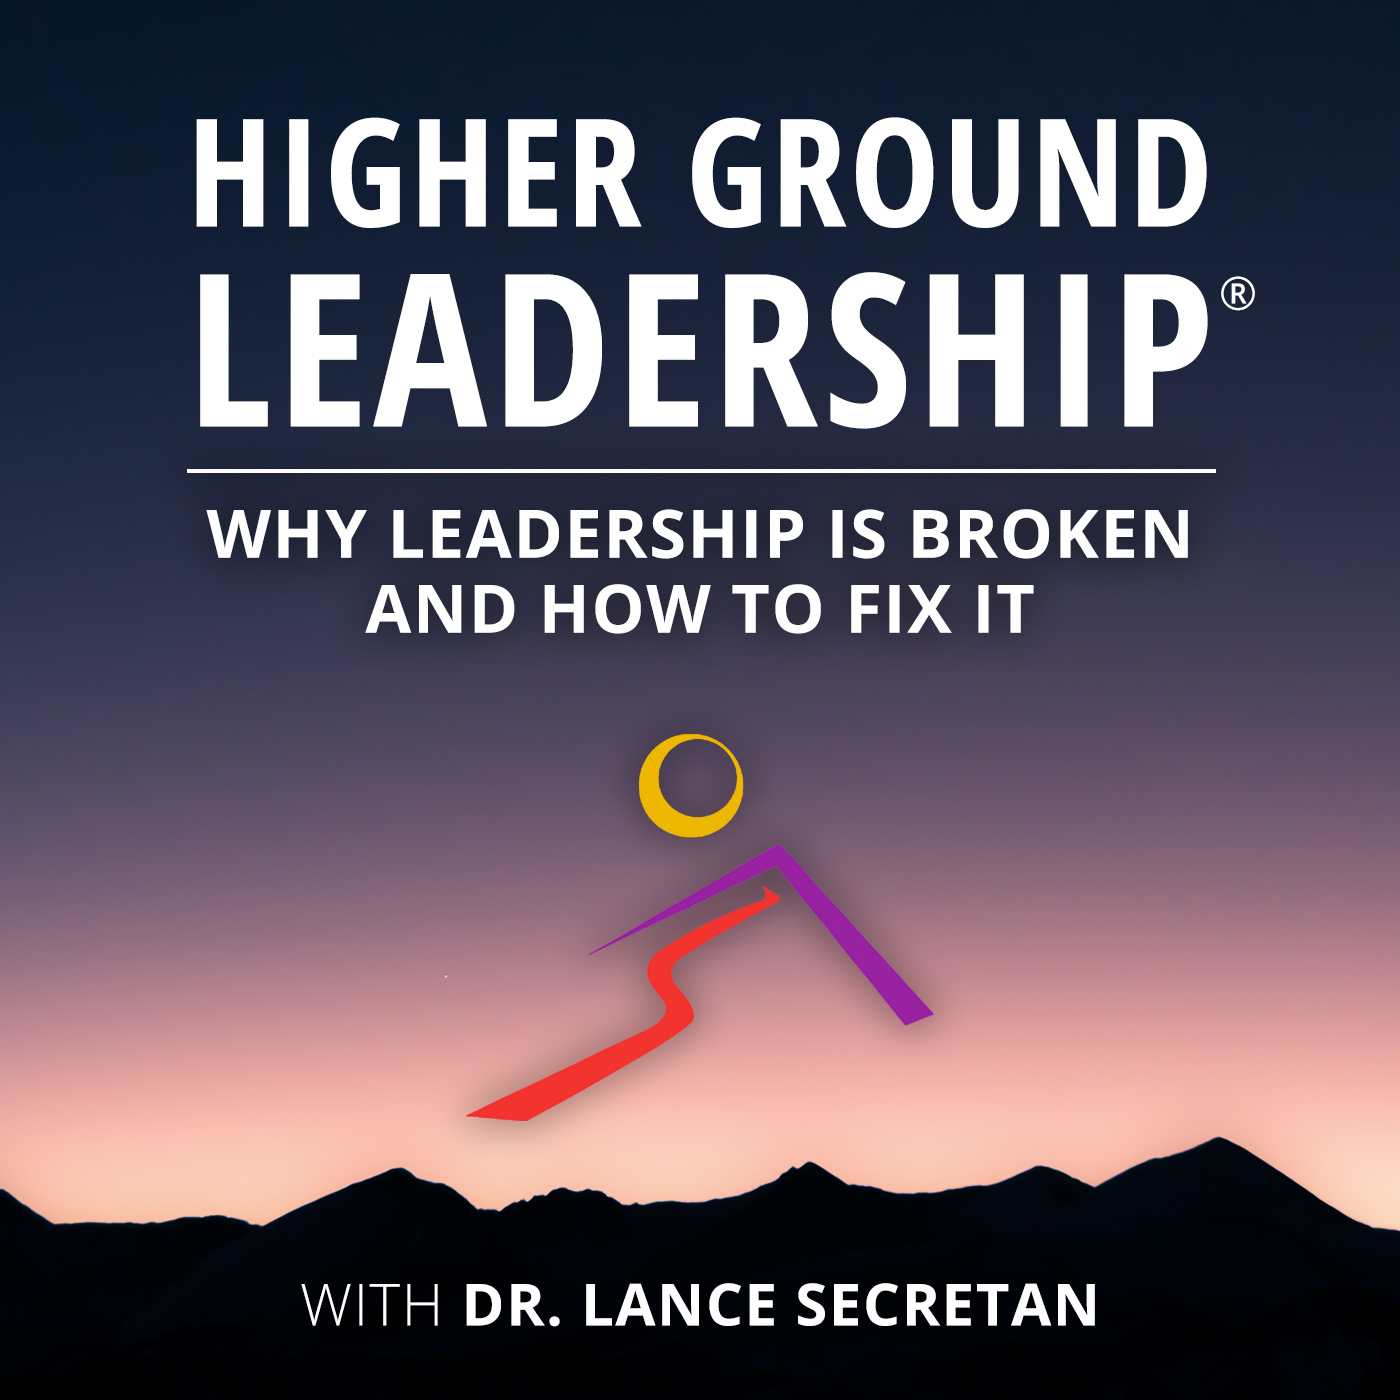 Higher Ground Leadership